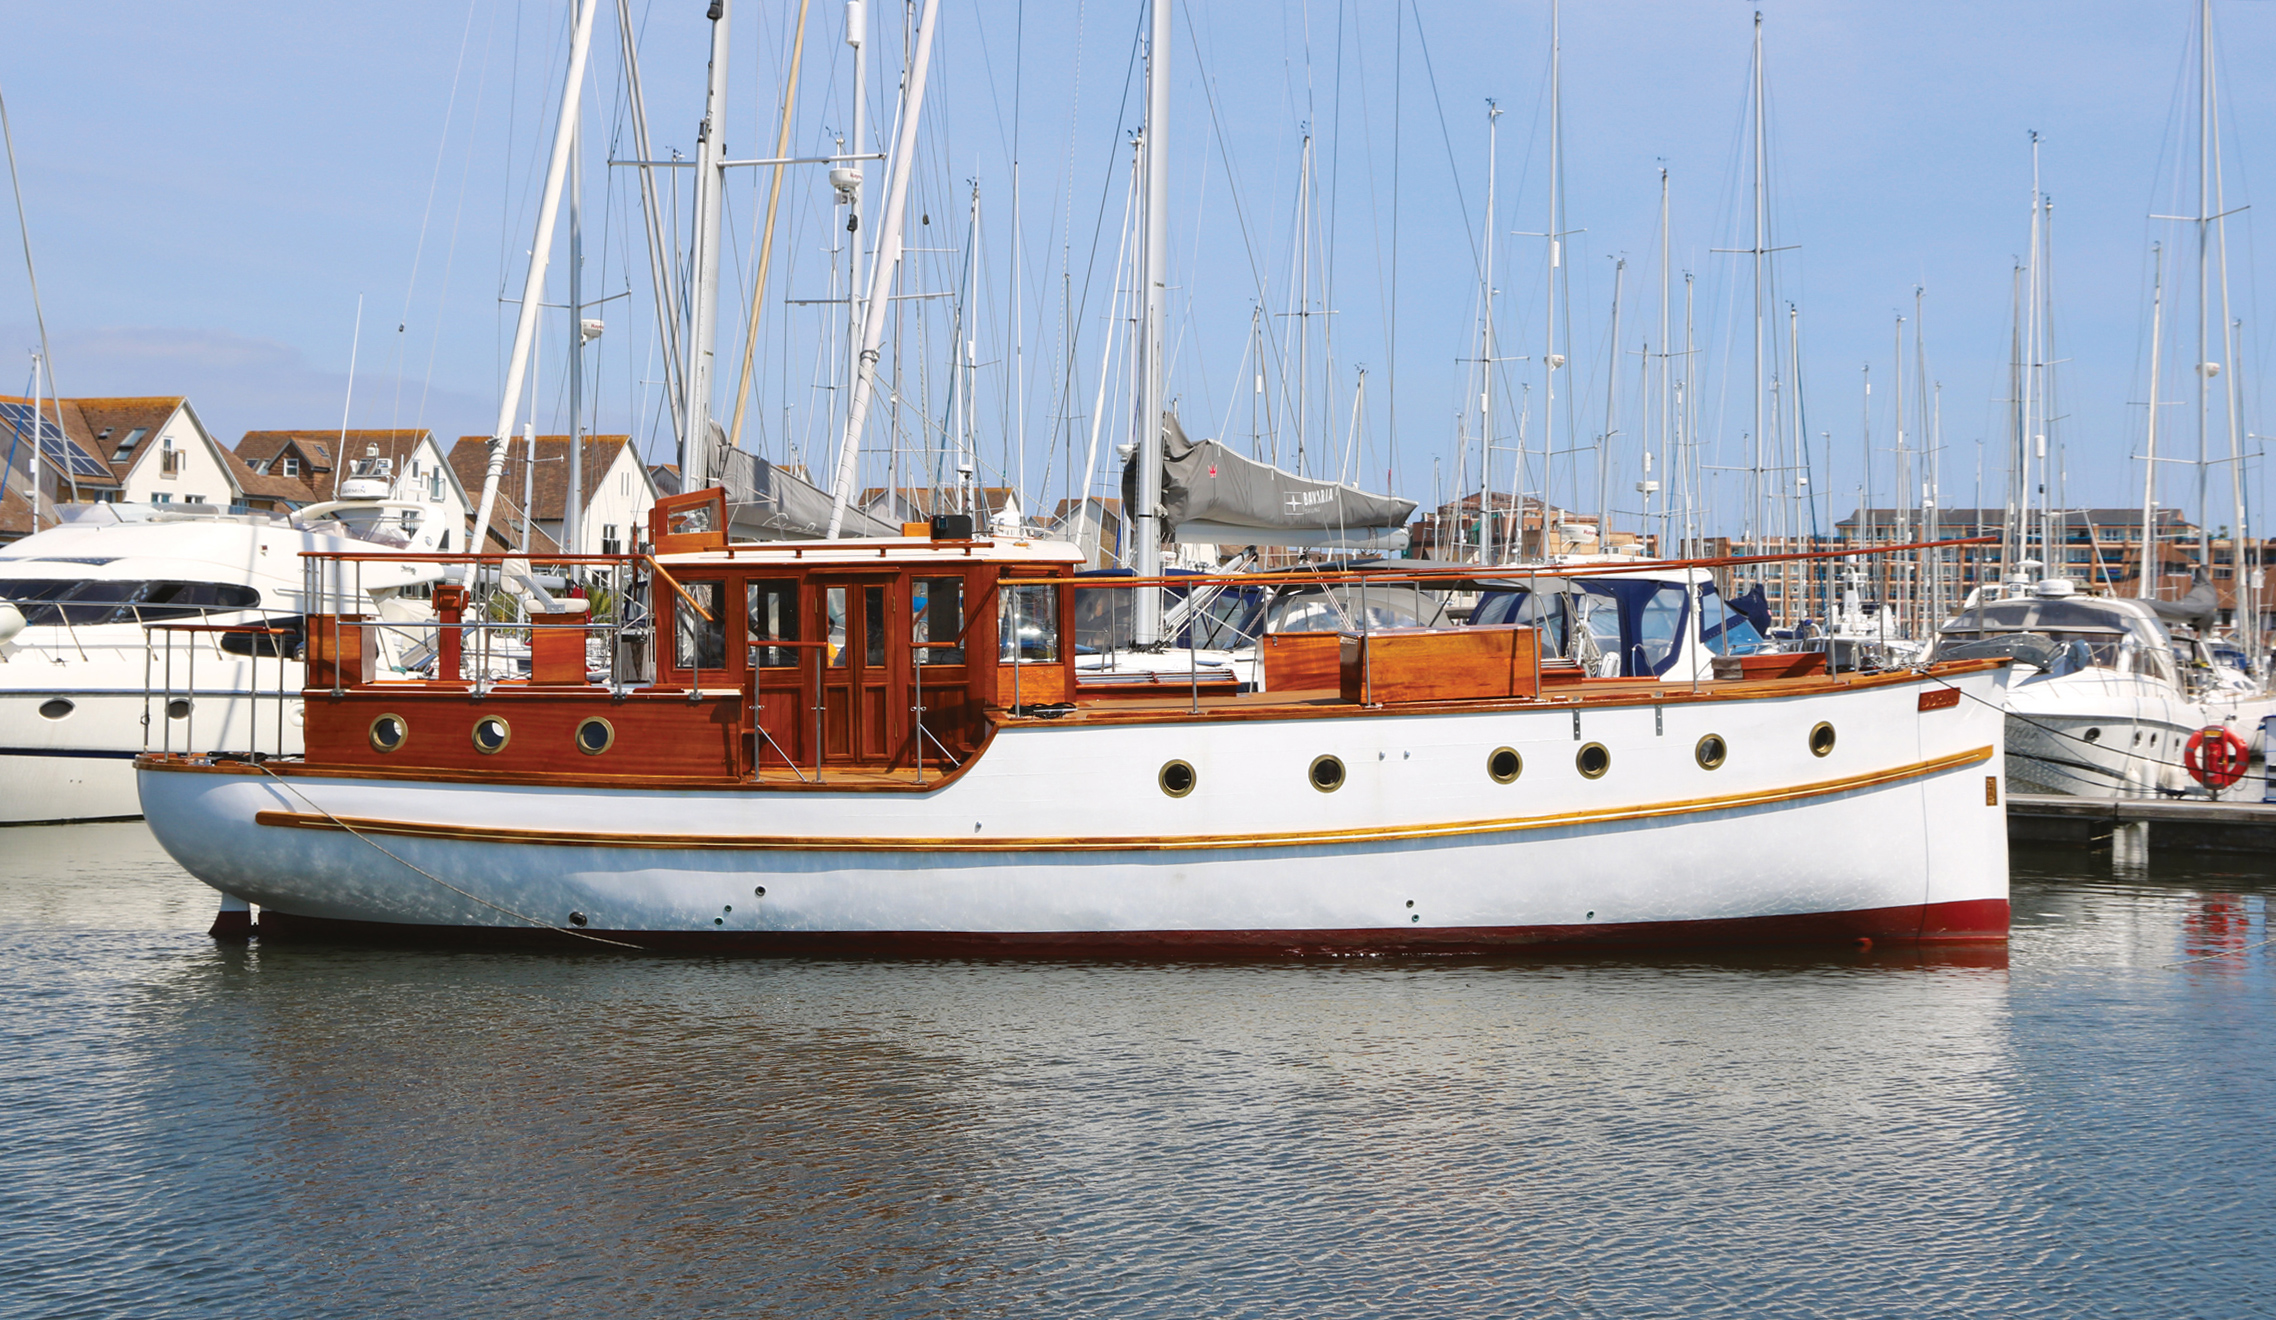 Dunkirk Little Ship restoration: The amazing boat that survived both World Wars